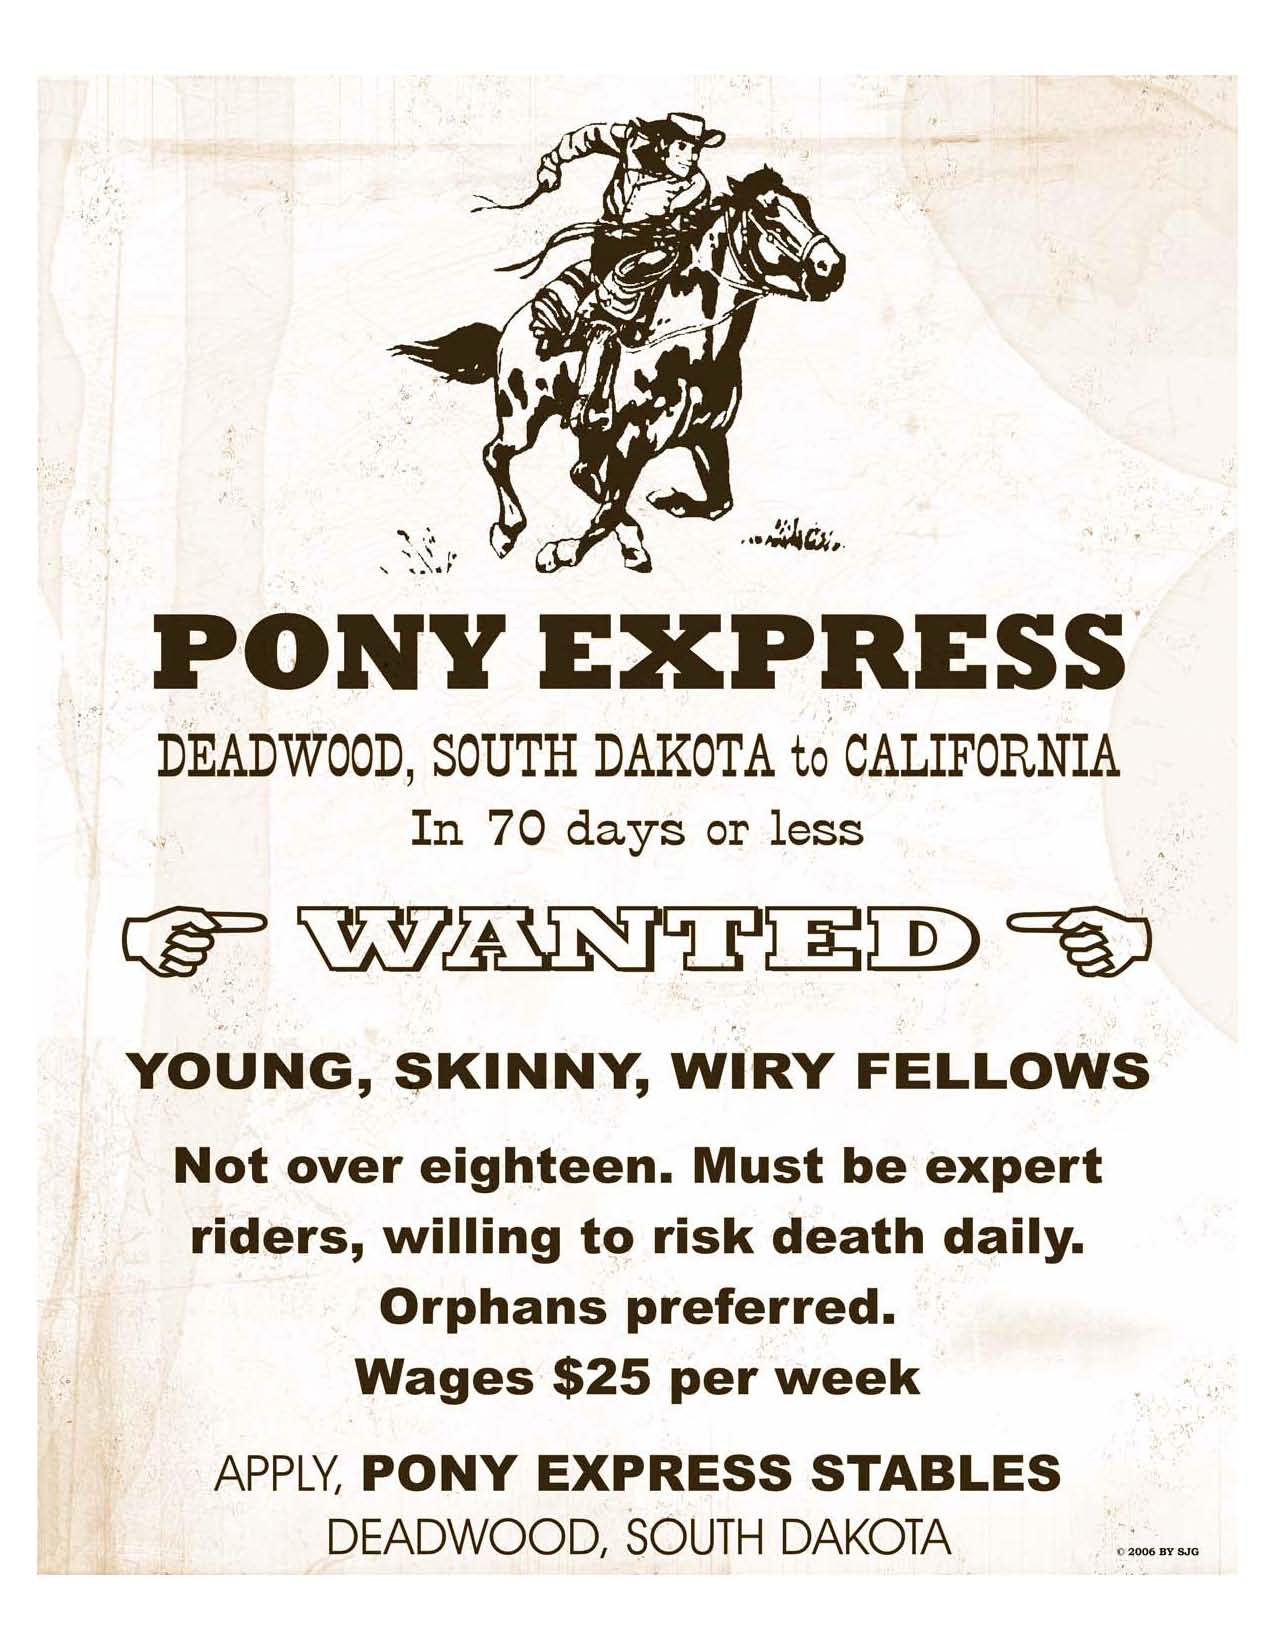 Send A Letter With The Pony Express